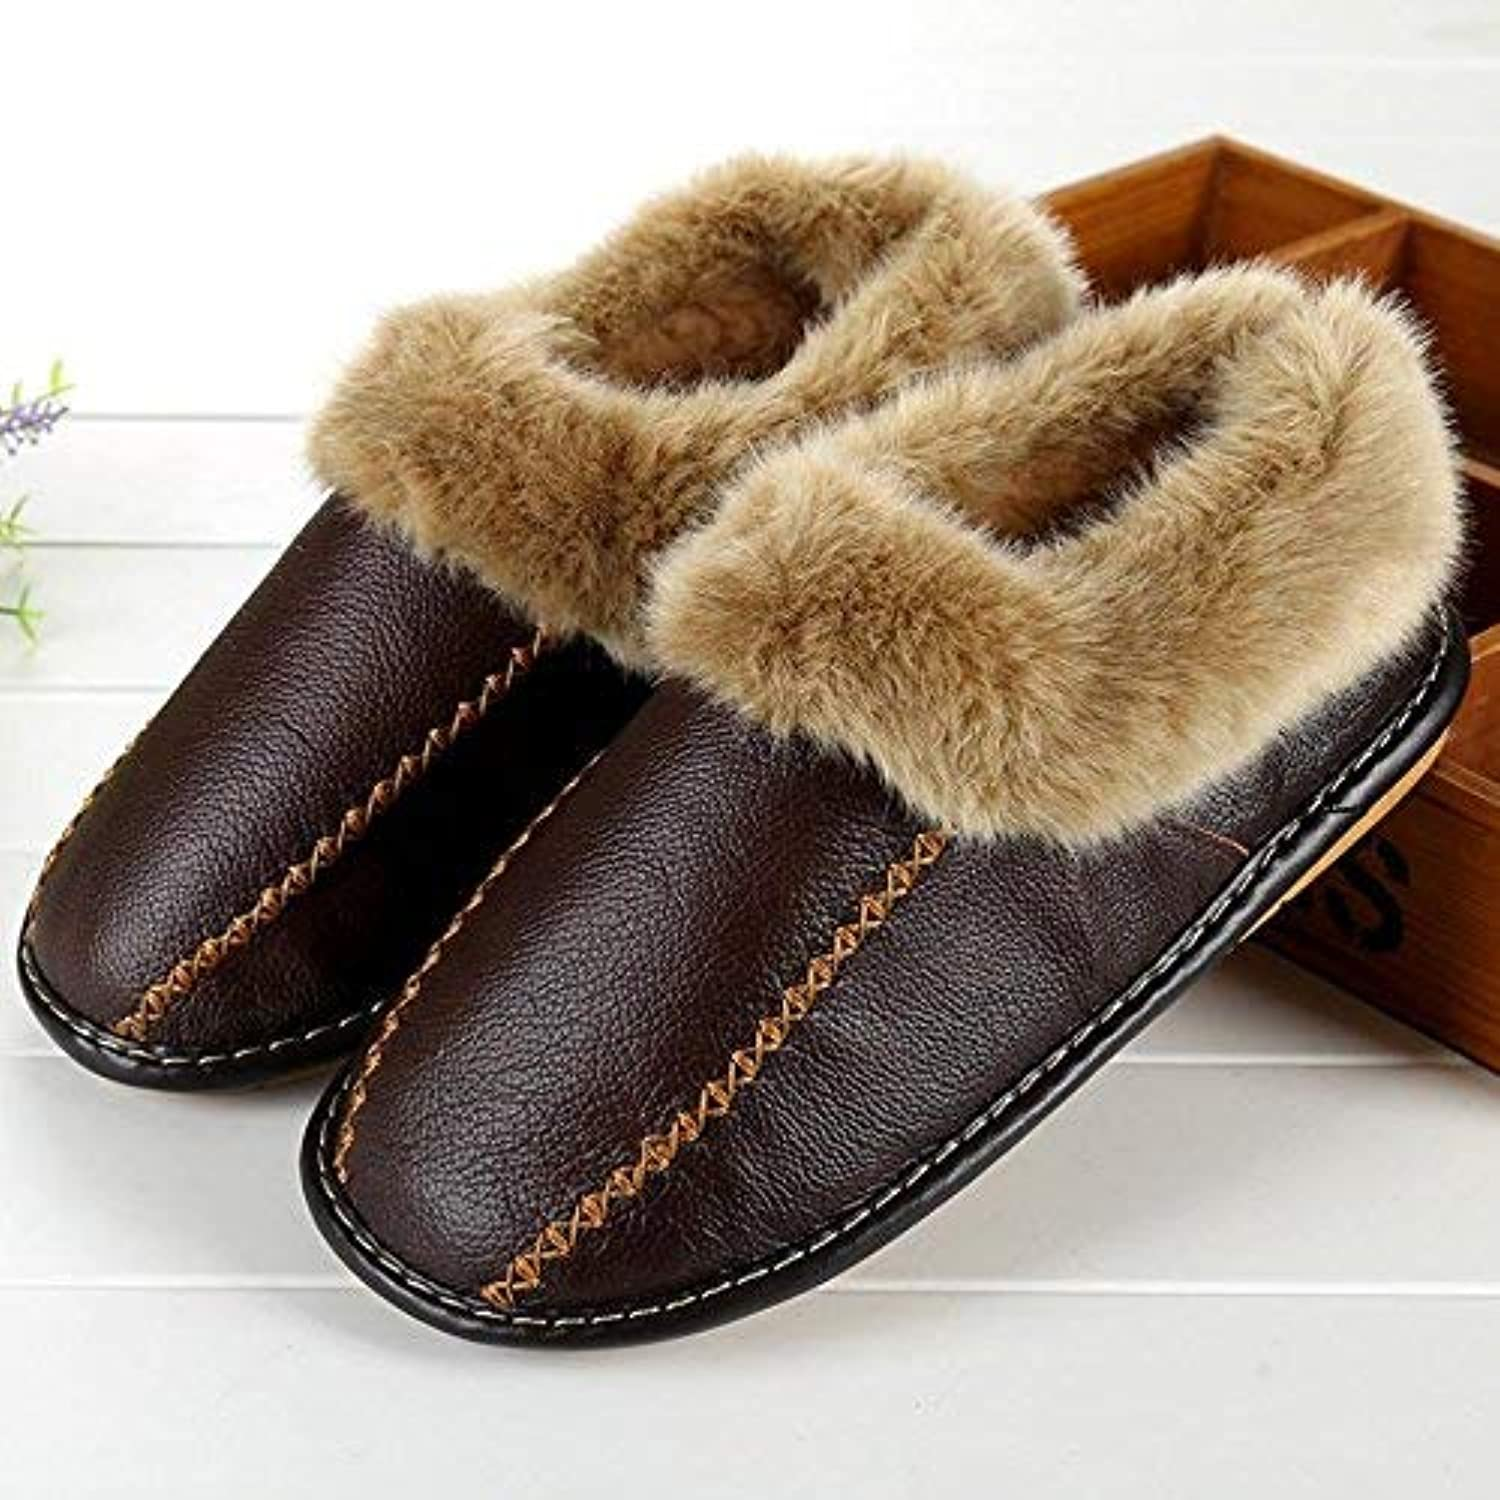 So8ooa Comfortable shoes Men's Casual Faux-Leather Slippers in Autumn and Winter The Indoor Keep Warm Slippers Black Brown for Men